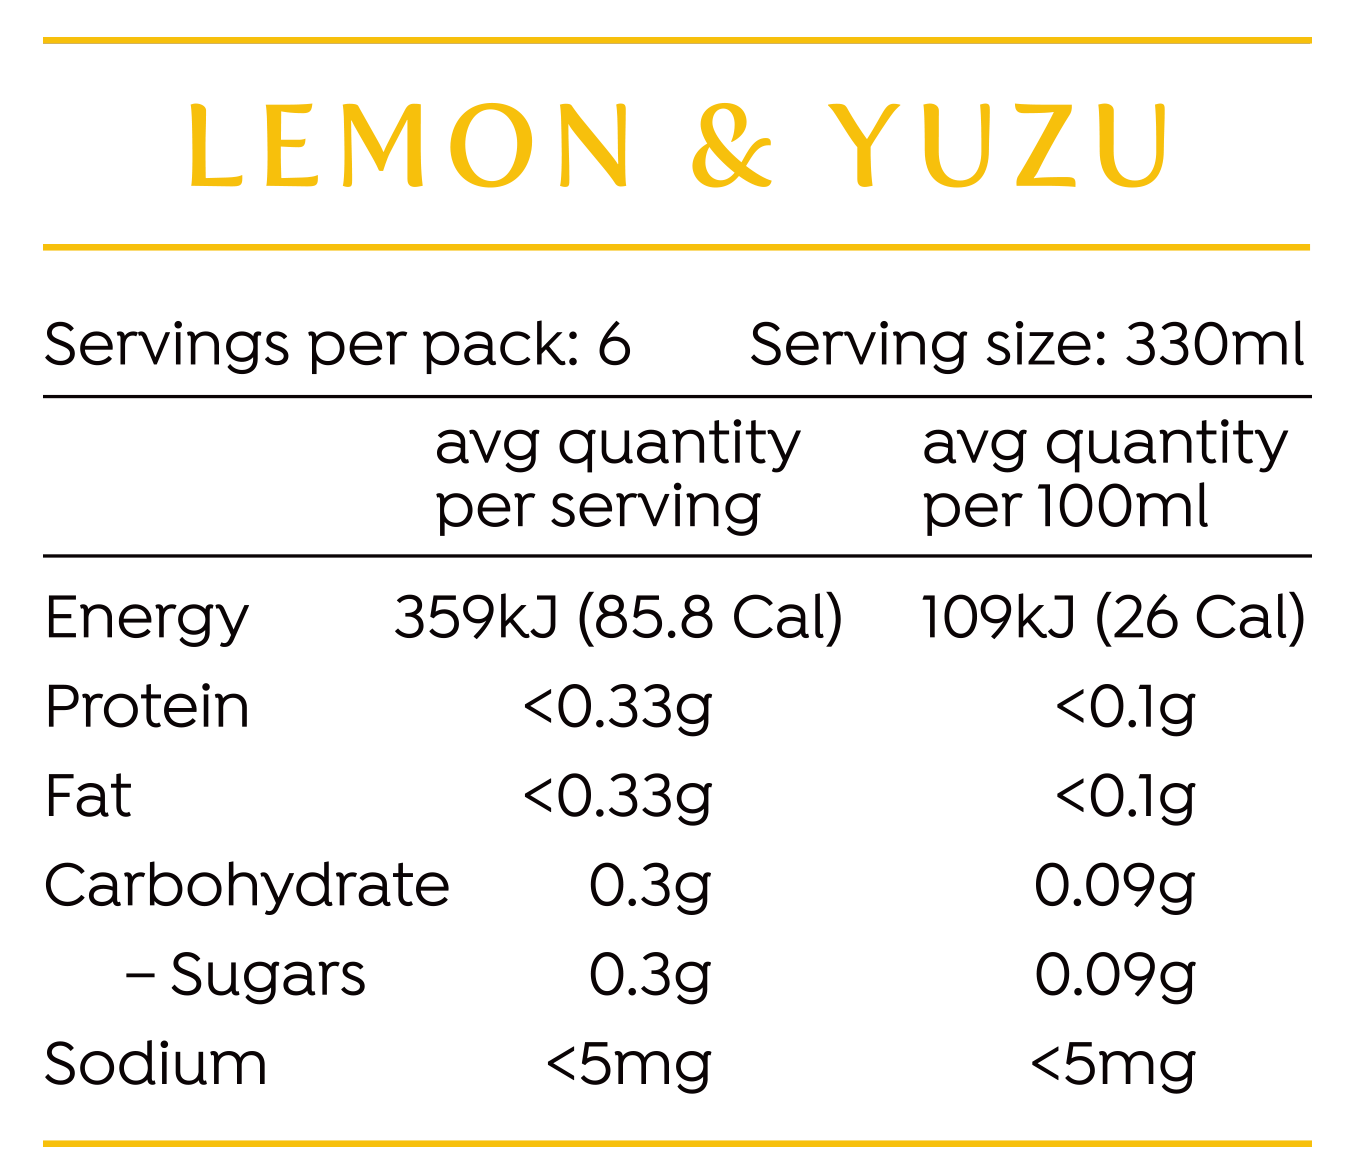 - Our drinks are made simply – with sparkling water, fermented and distilled cane sugar, a dash of real fruit flavour, and a hint of stevia. That's it!Each can of our Lemon and Yuzu has less than 0.3 grams of sugar ( for reference, a can of Coke has about 35 grams!!), and is only 85 calories. So if you're on a low-calorie or low-carb diet, like Keto or Paleo, check out our nutritional panel - and see if it's right for you.We're currently producing Berry & Blackcurrant and a Lemon & Yuzu ( which is the nutritional panel to the left), with Apple & Feijoa on the way. There's alwats a few tests going on in our workshop too, so make sure you get in contact if you want us to try a new flavour! Follow us on Instagram to stay up-to-date on what we're up to, and where Native's going next.